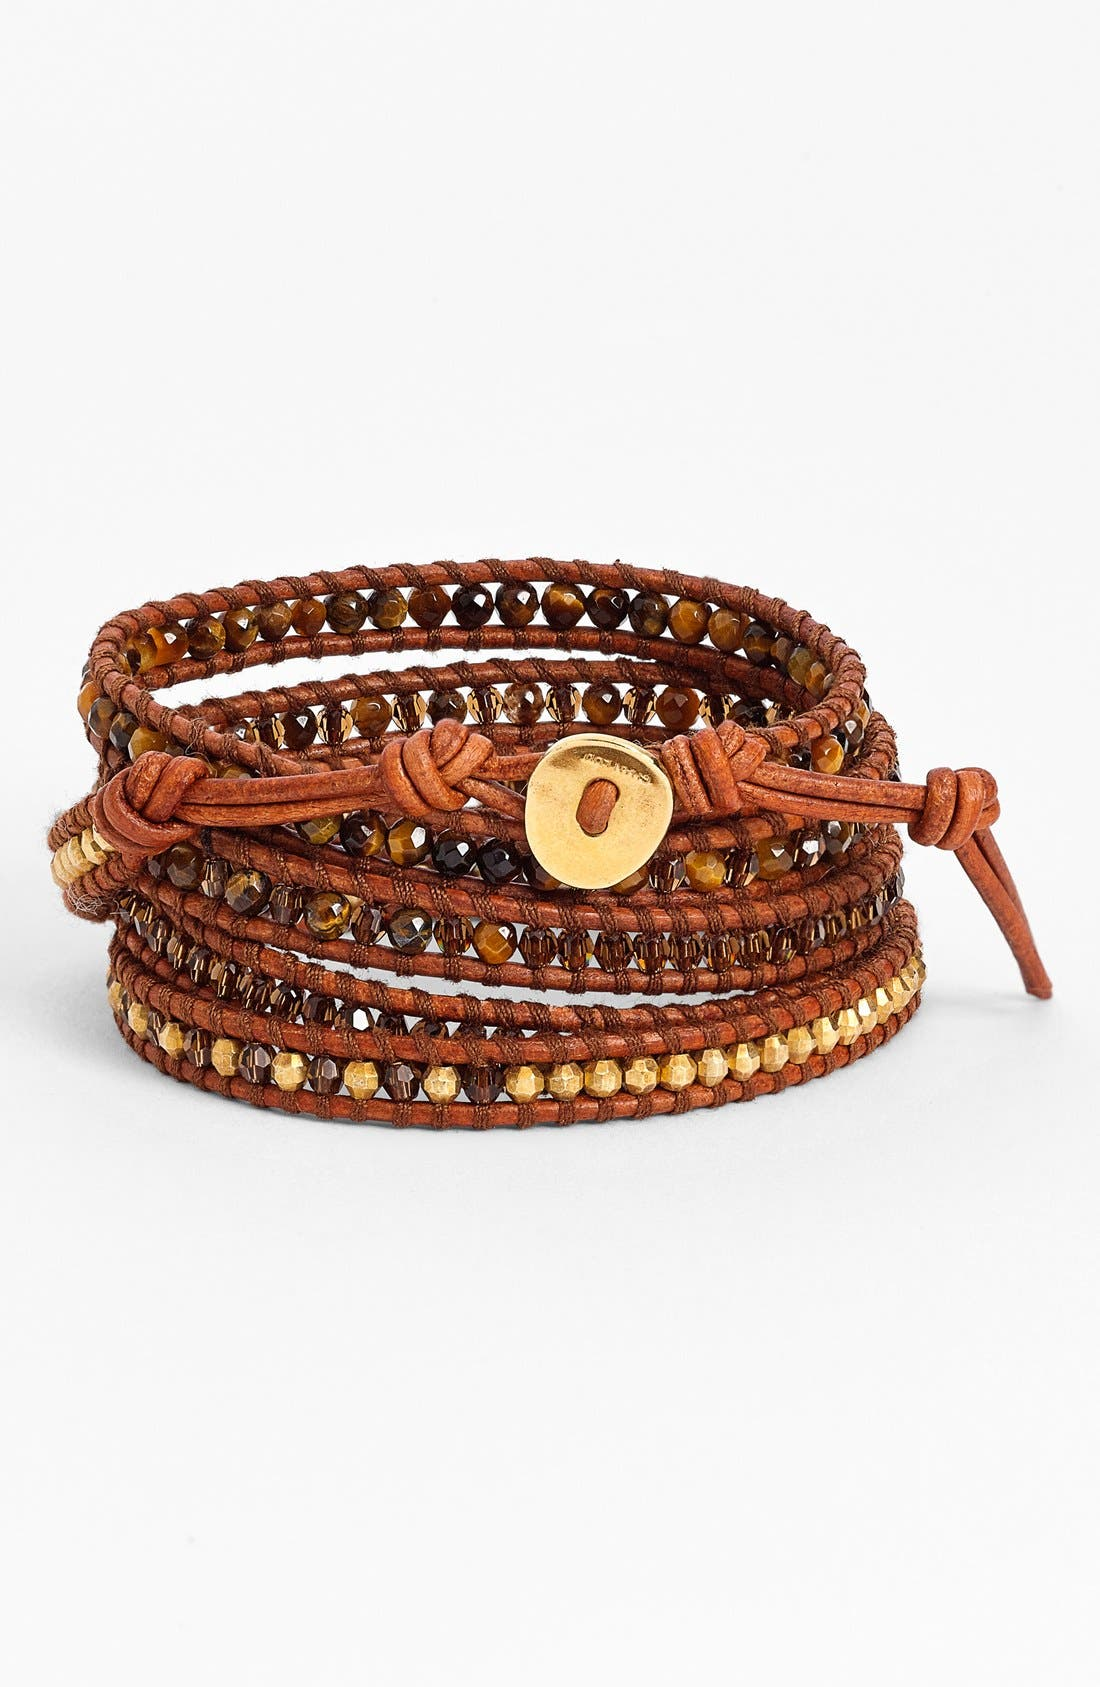 Alternate Image 1 Selected - Chan Luu Beaded Leather Wrap Bracelet